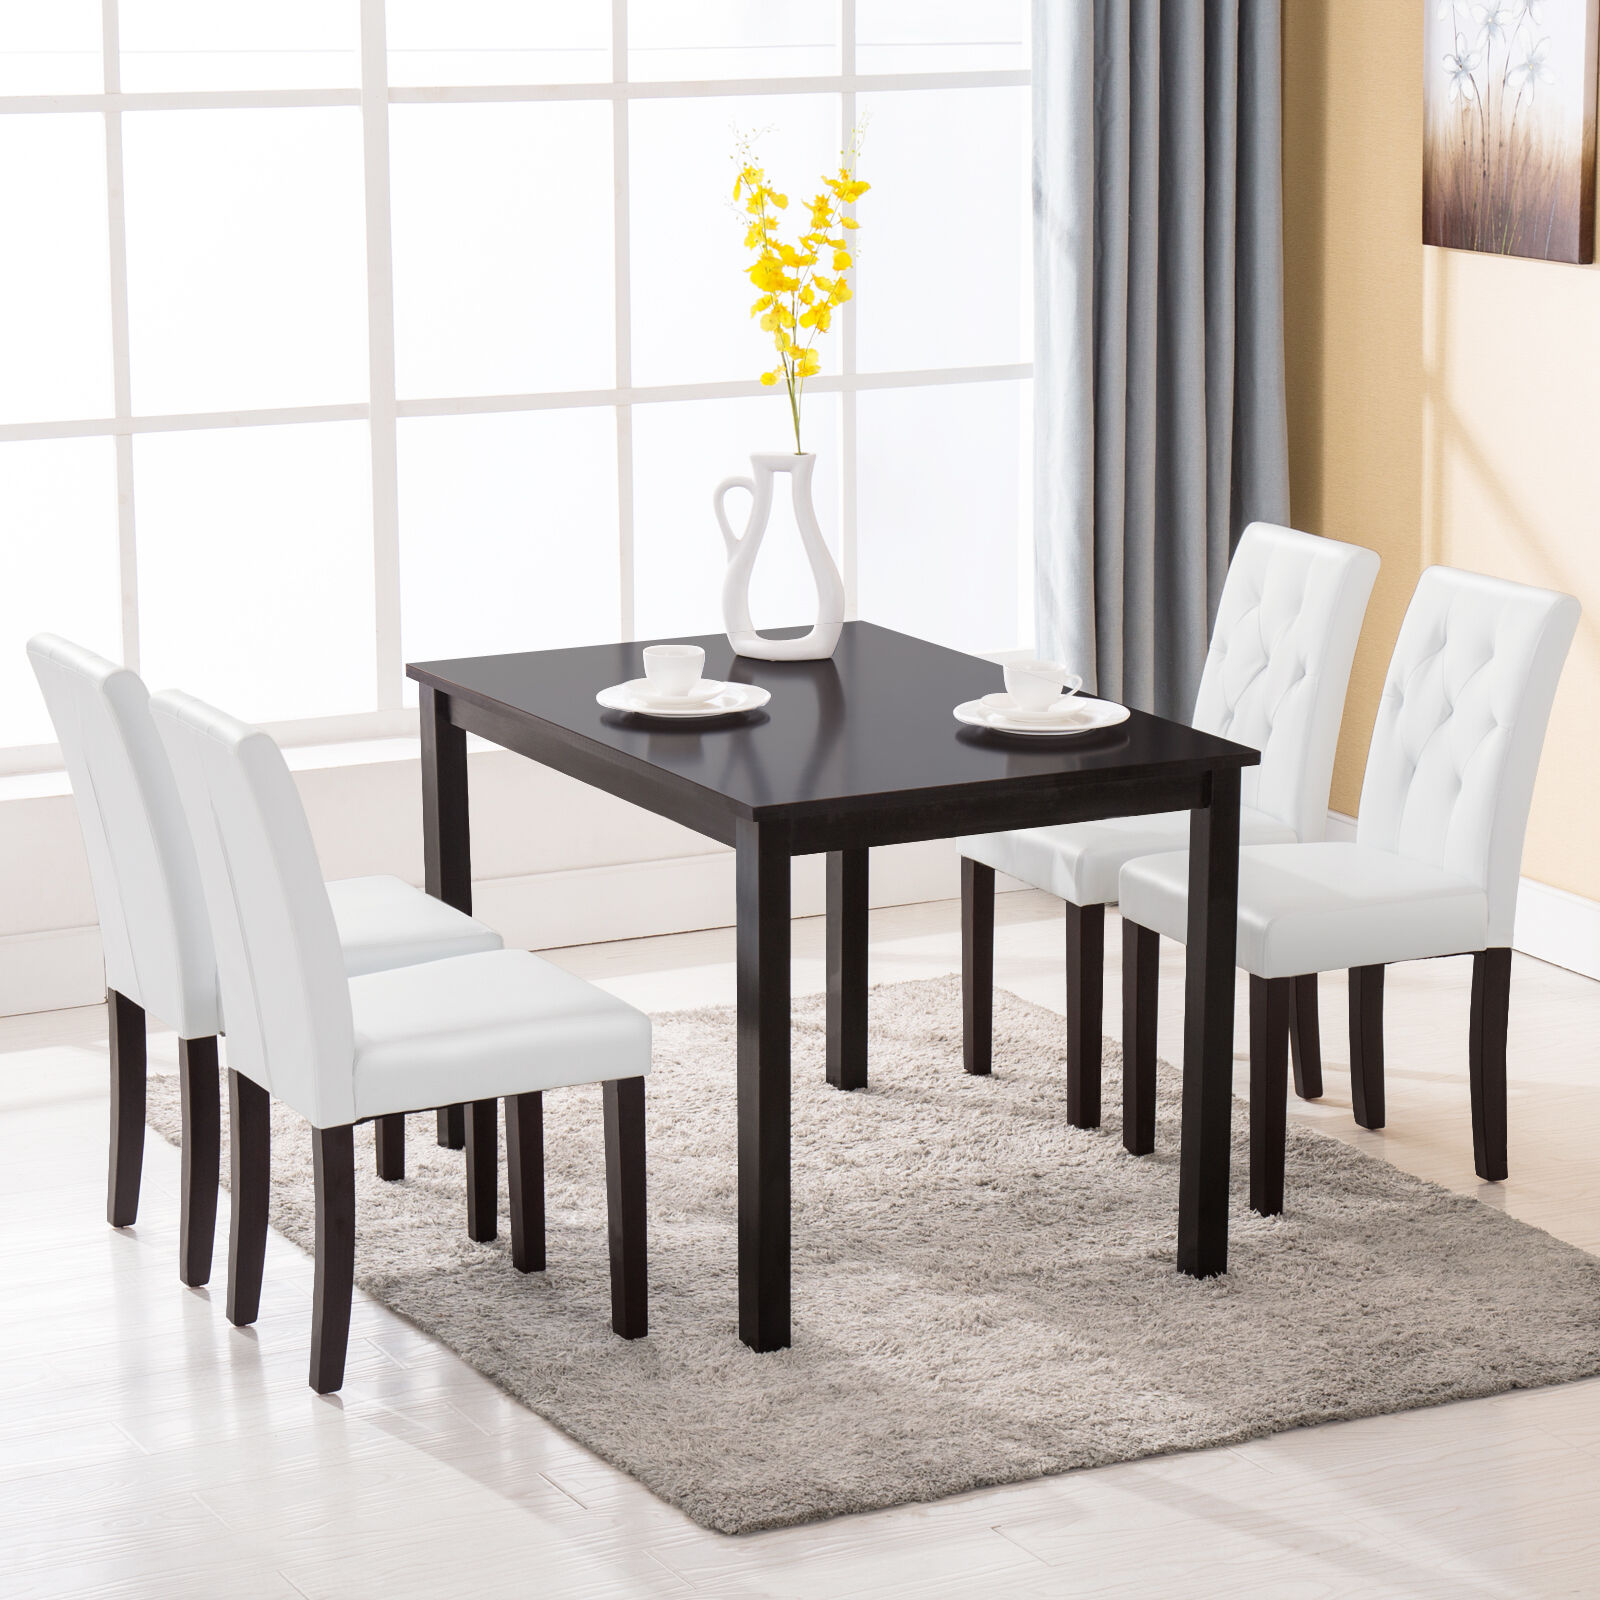 Table And Chair Dining Sets: 5 Piece Dining Table Set 4 Chairs Room Kitchen Dinette